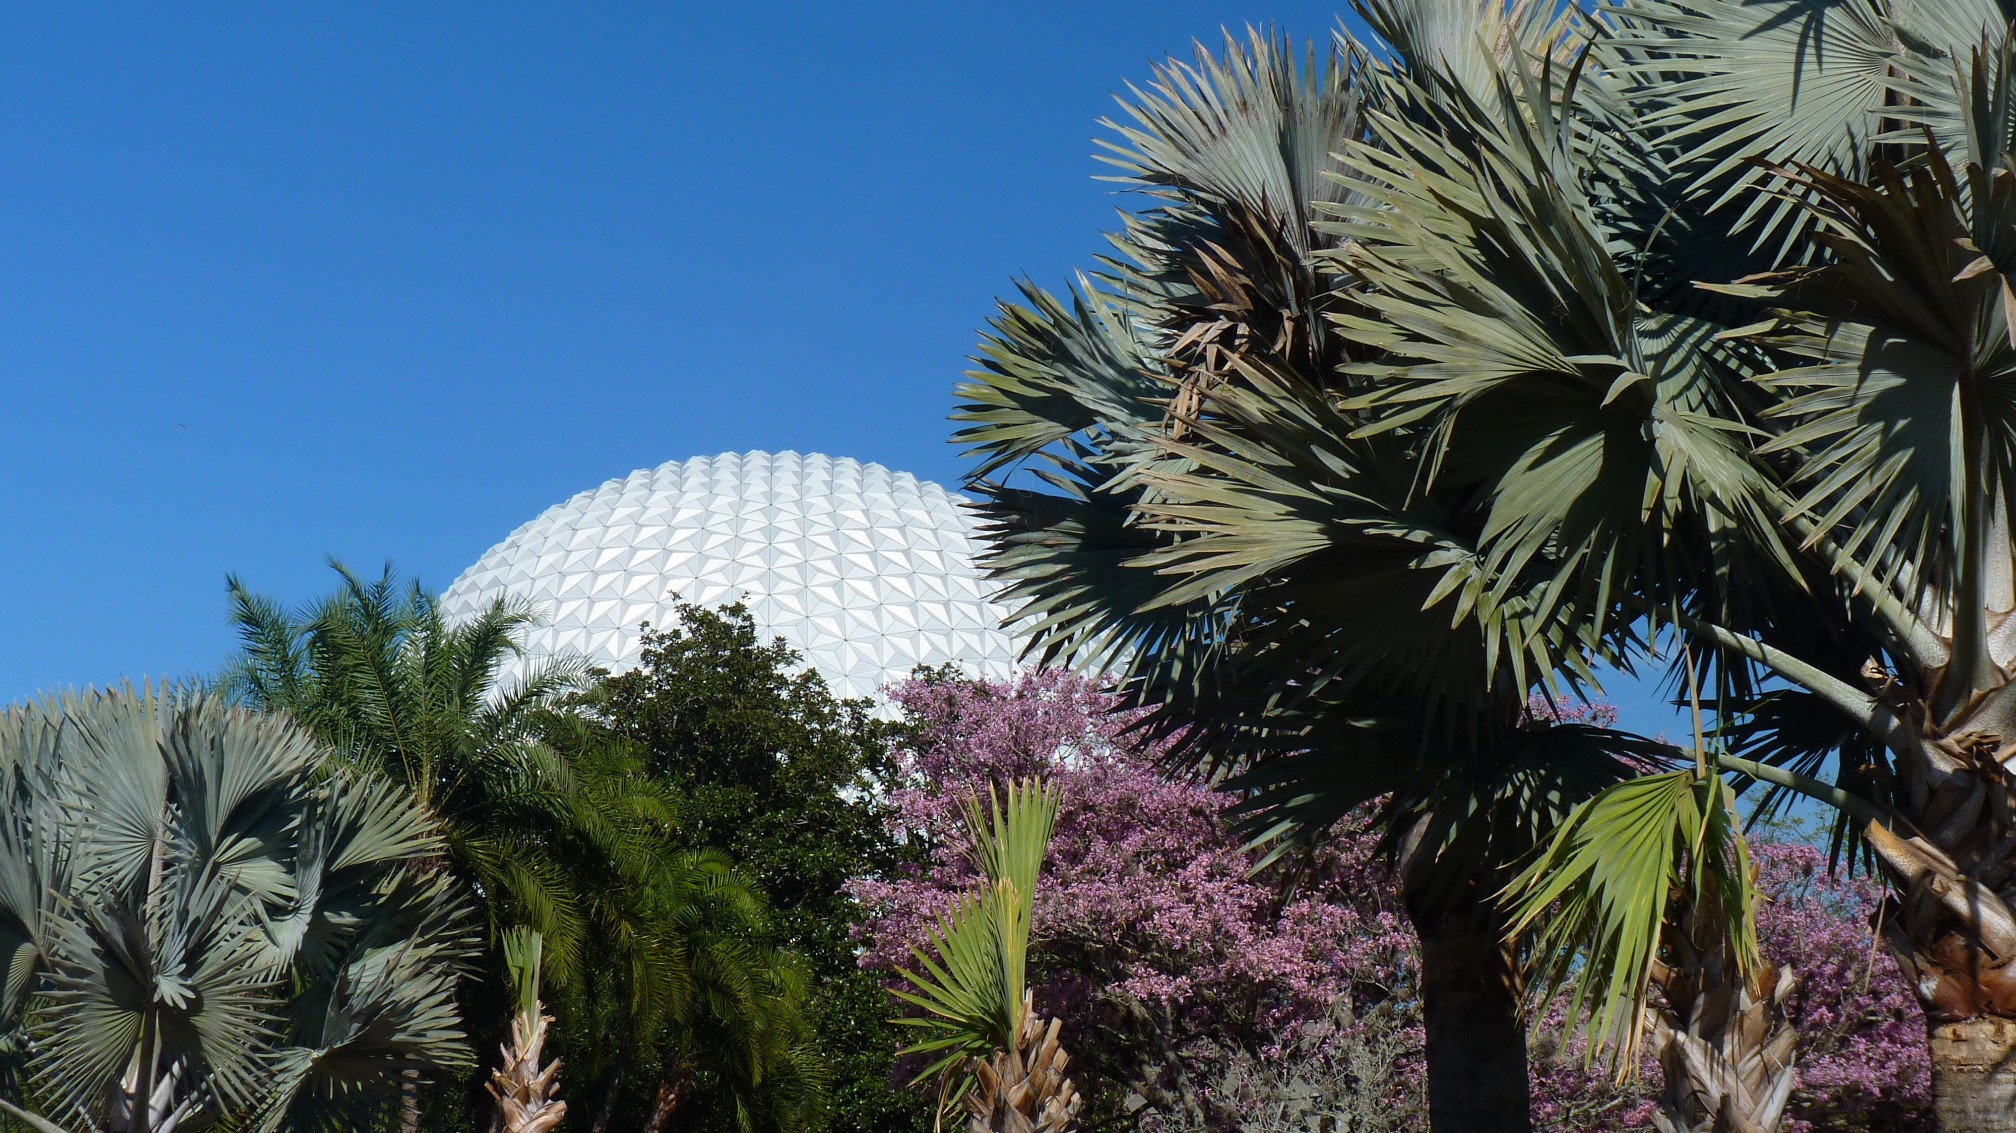 Jud's Disney Picture of the Day: CRESCENT BIG BALL